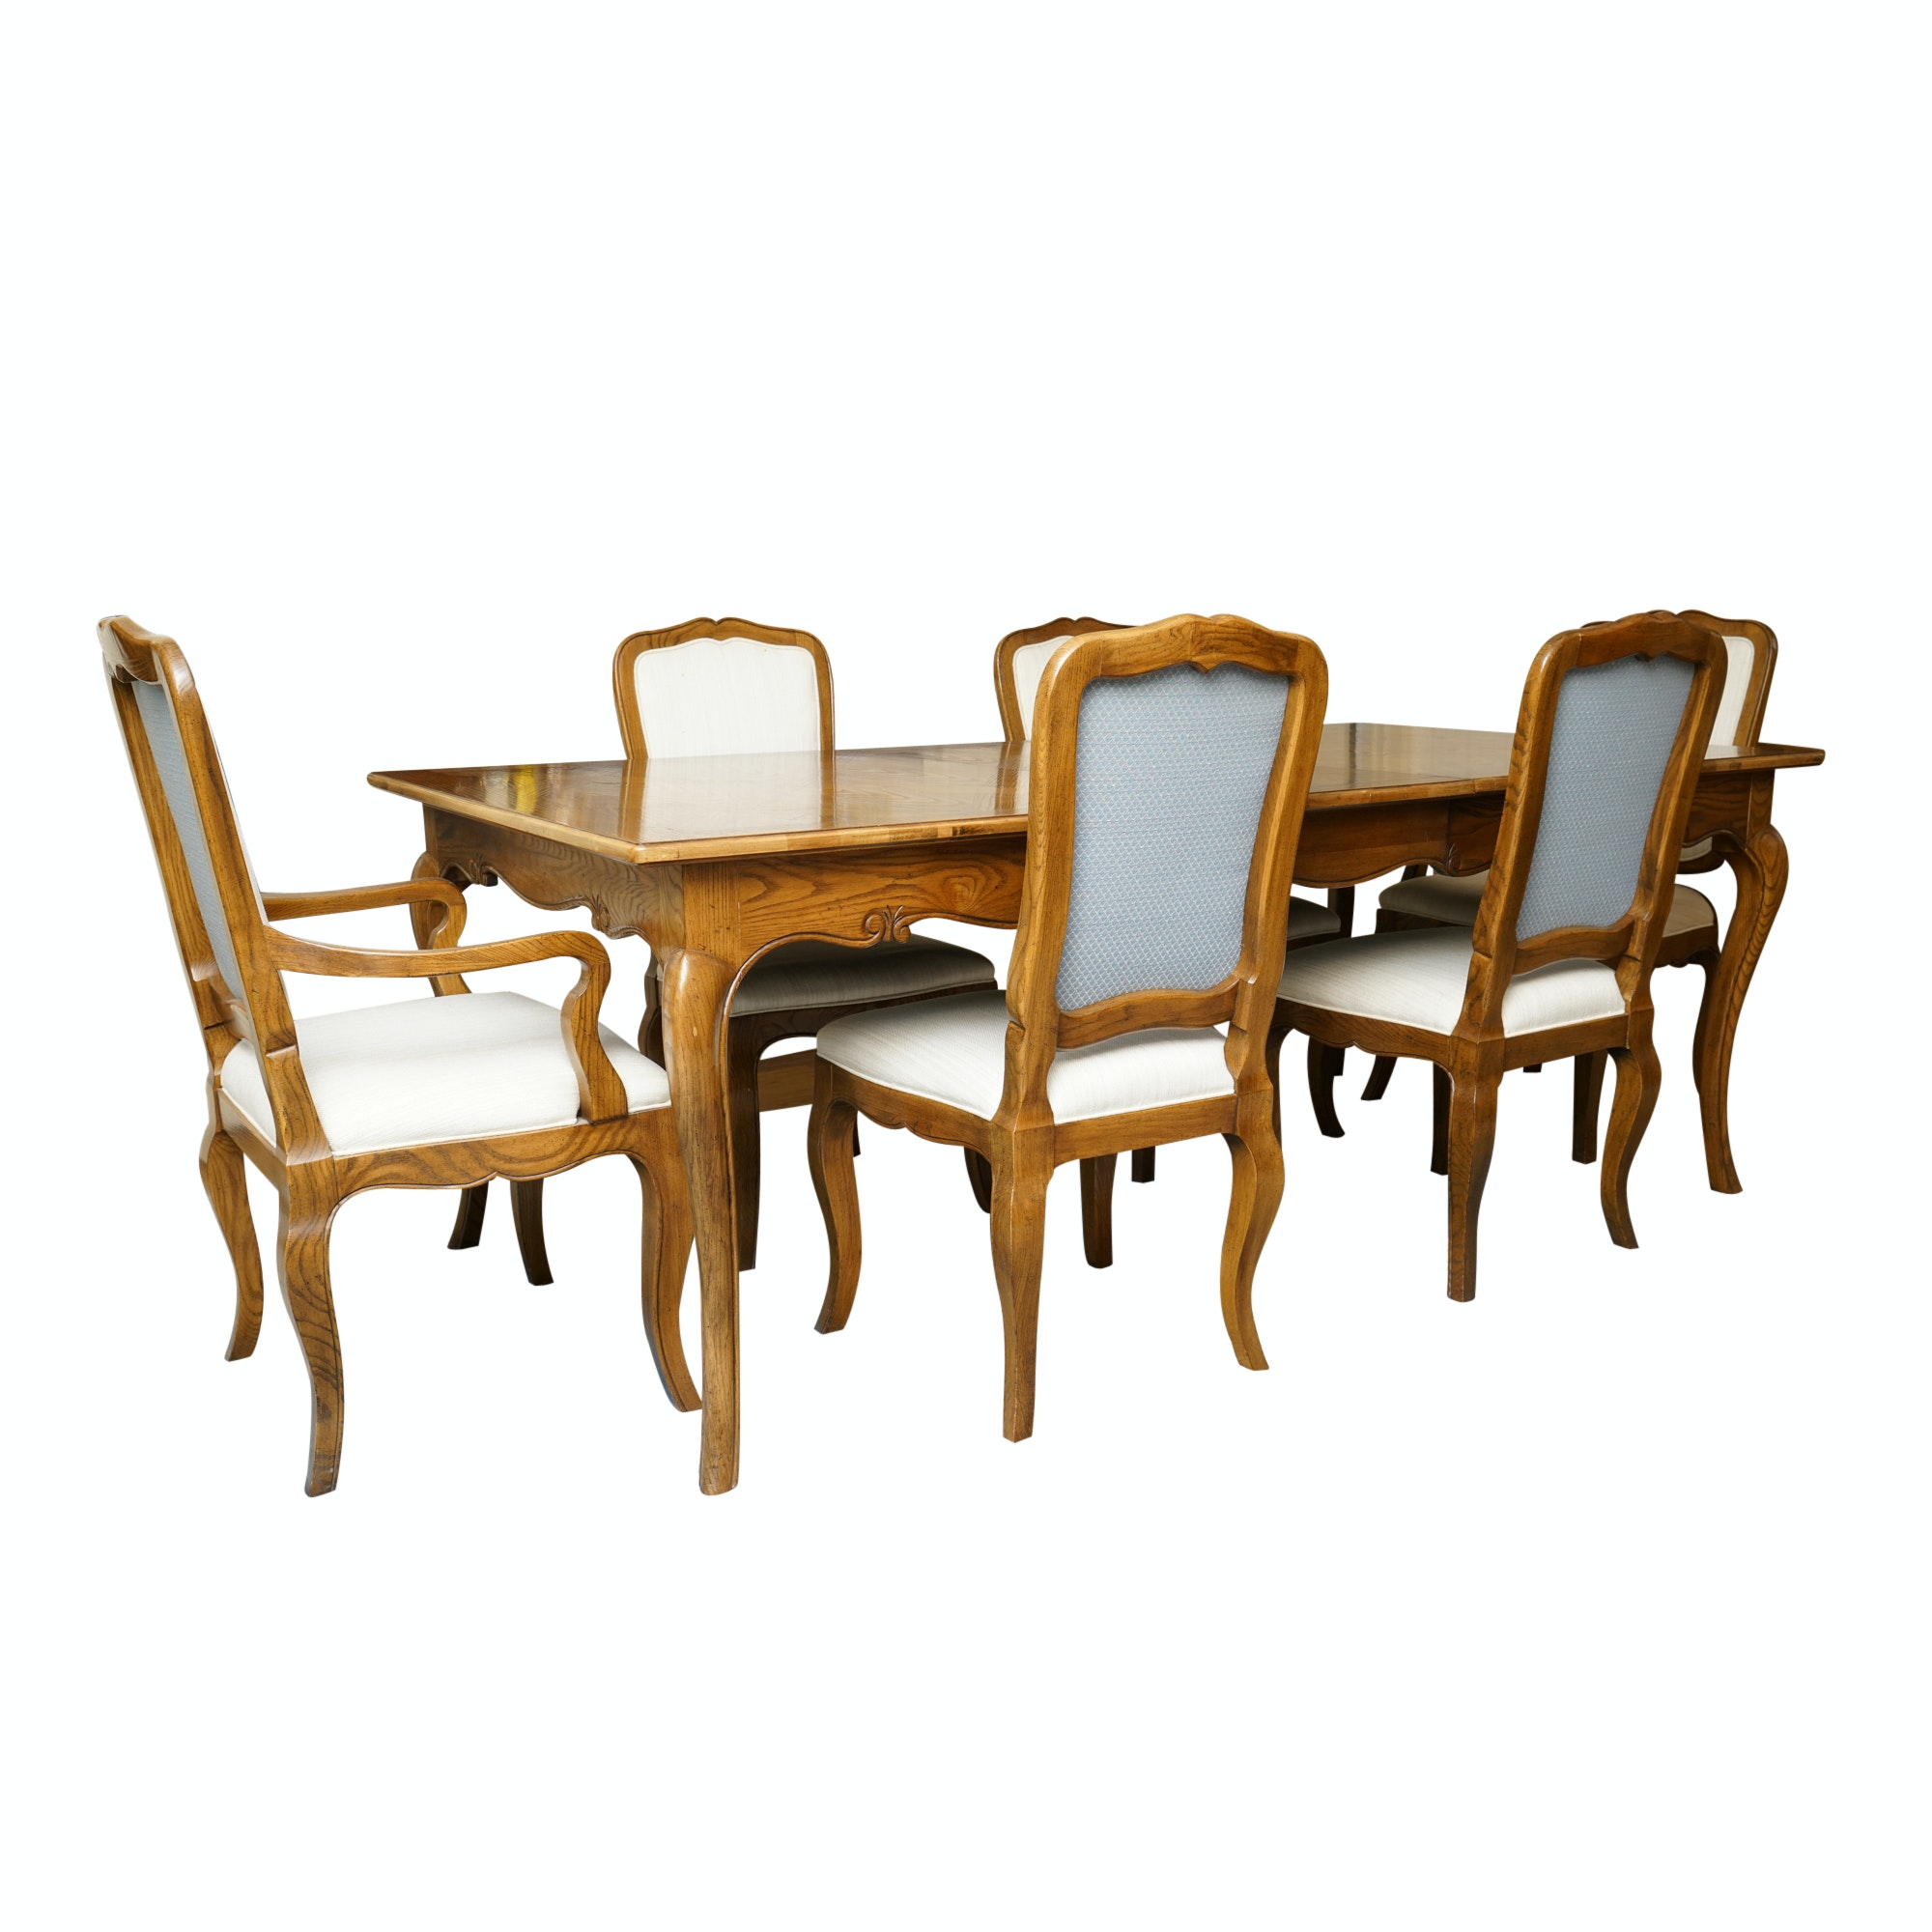 French Provincial Style Dining Table and Chairs by Baker